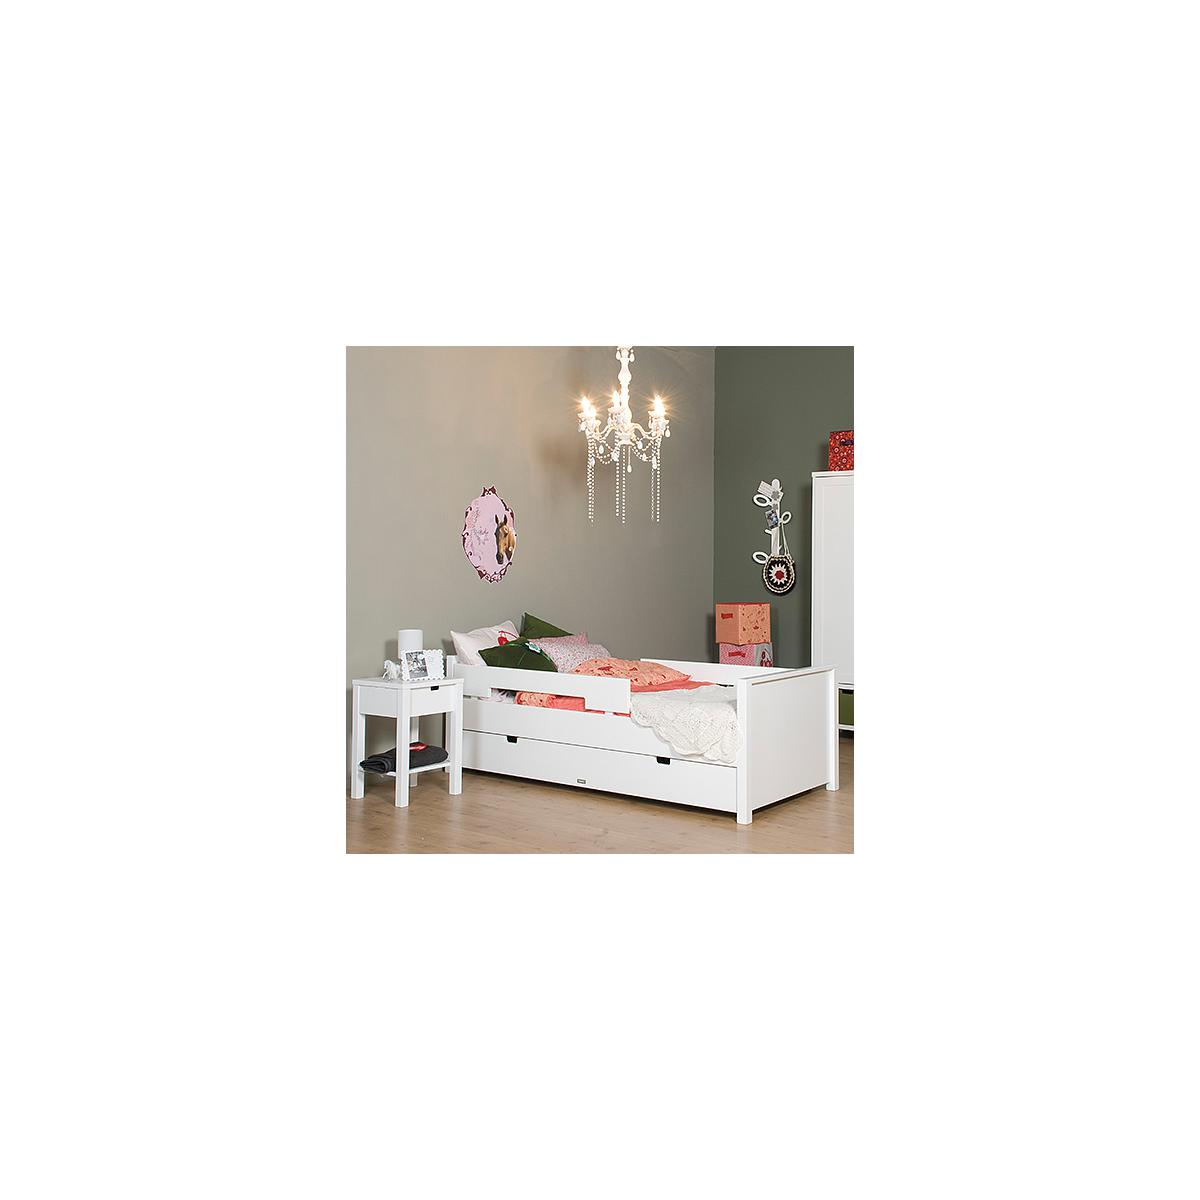 MIX & MATCH by Bopita JONNE Lit enfant junior 70x150 cm blanc